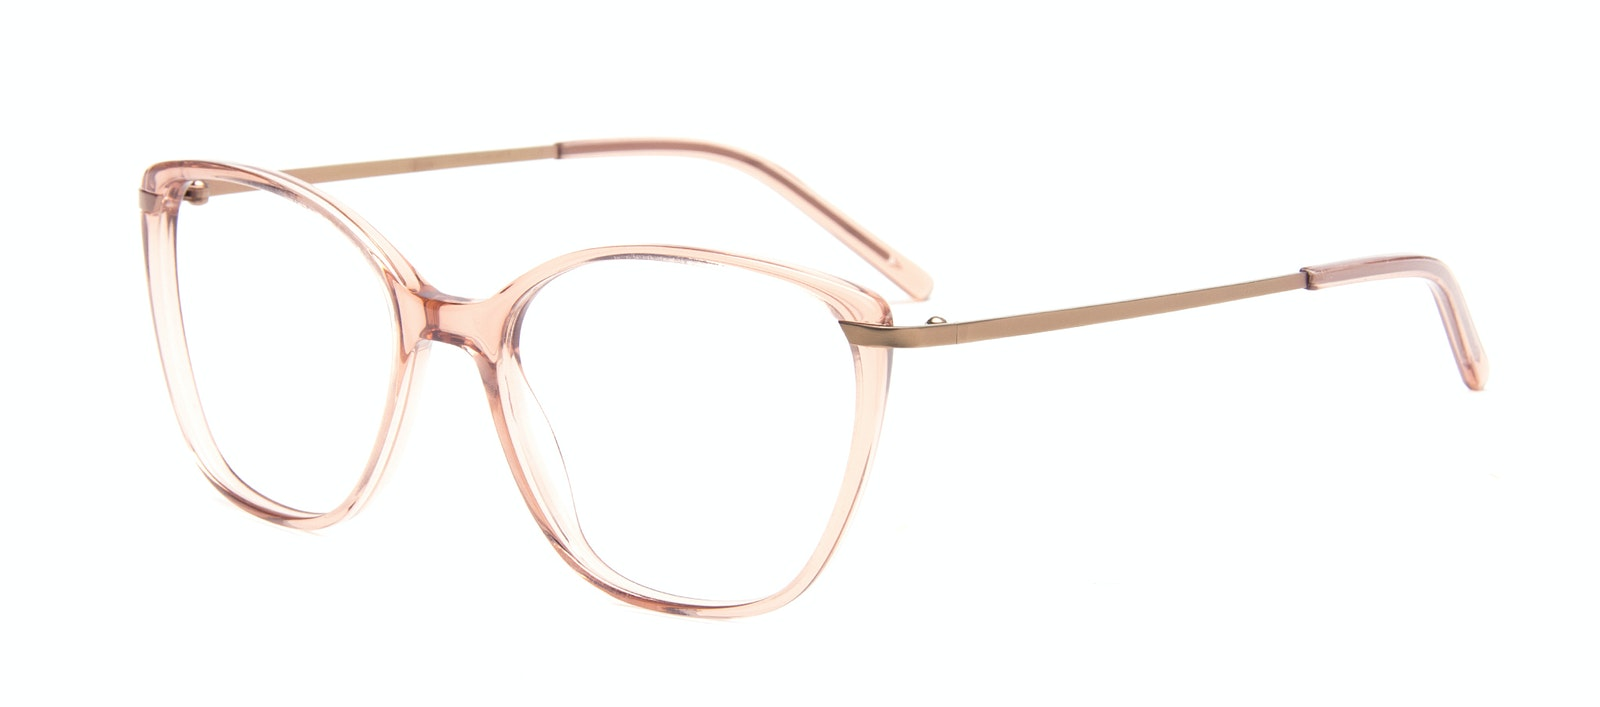 Affordable Fashion Glasses Rectangle Square Eyeglasses Women Illusion Rose Tilt